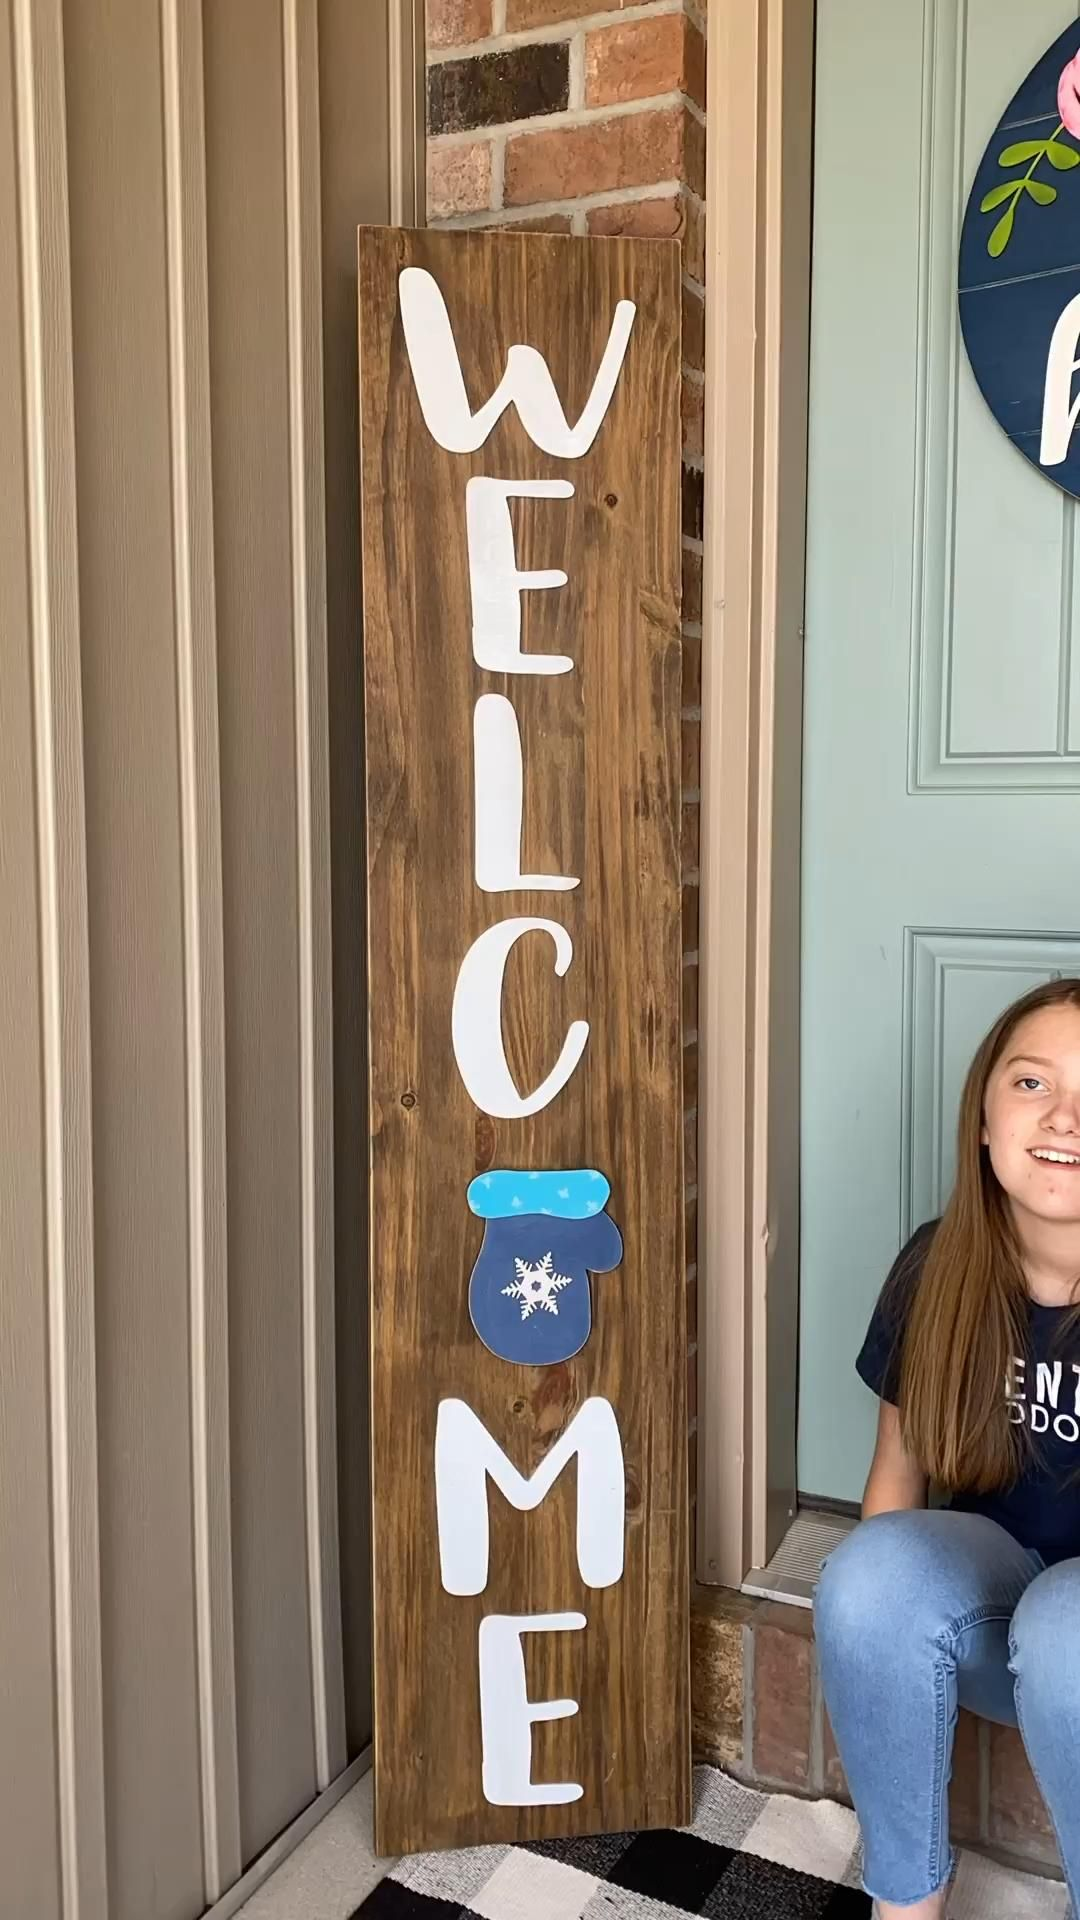 This cute DIY Welcome sign kit has interchangeable magnetic shapes that you can swap out each month.  We have over 30 different shapes to pick from.  This is such a fun way to dress up your front porch to welcome your guests.   Perfect craft to make with your kids while you are all home.